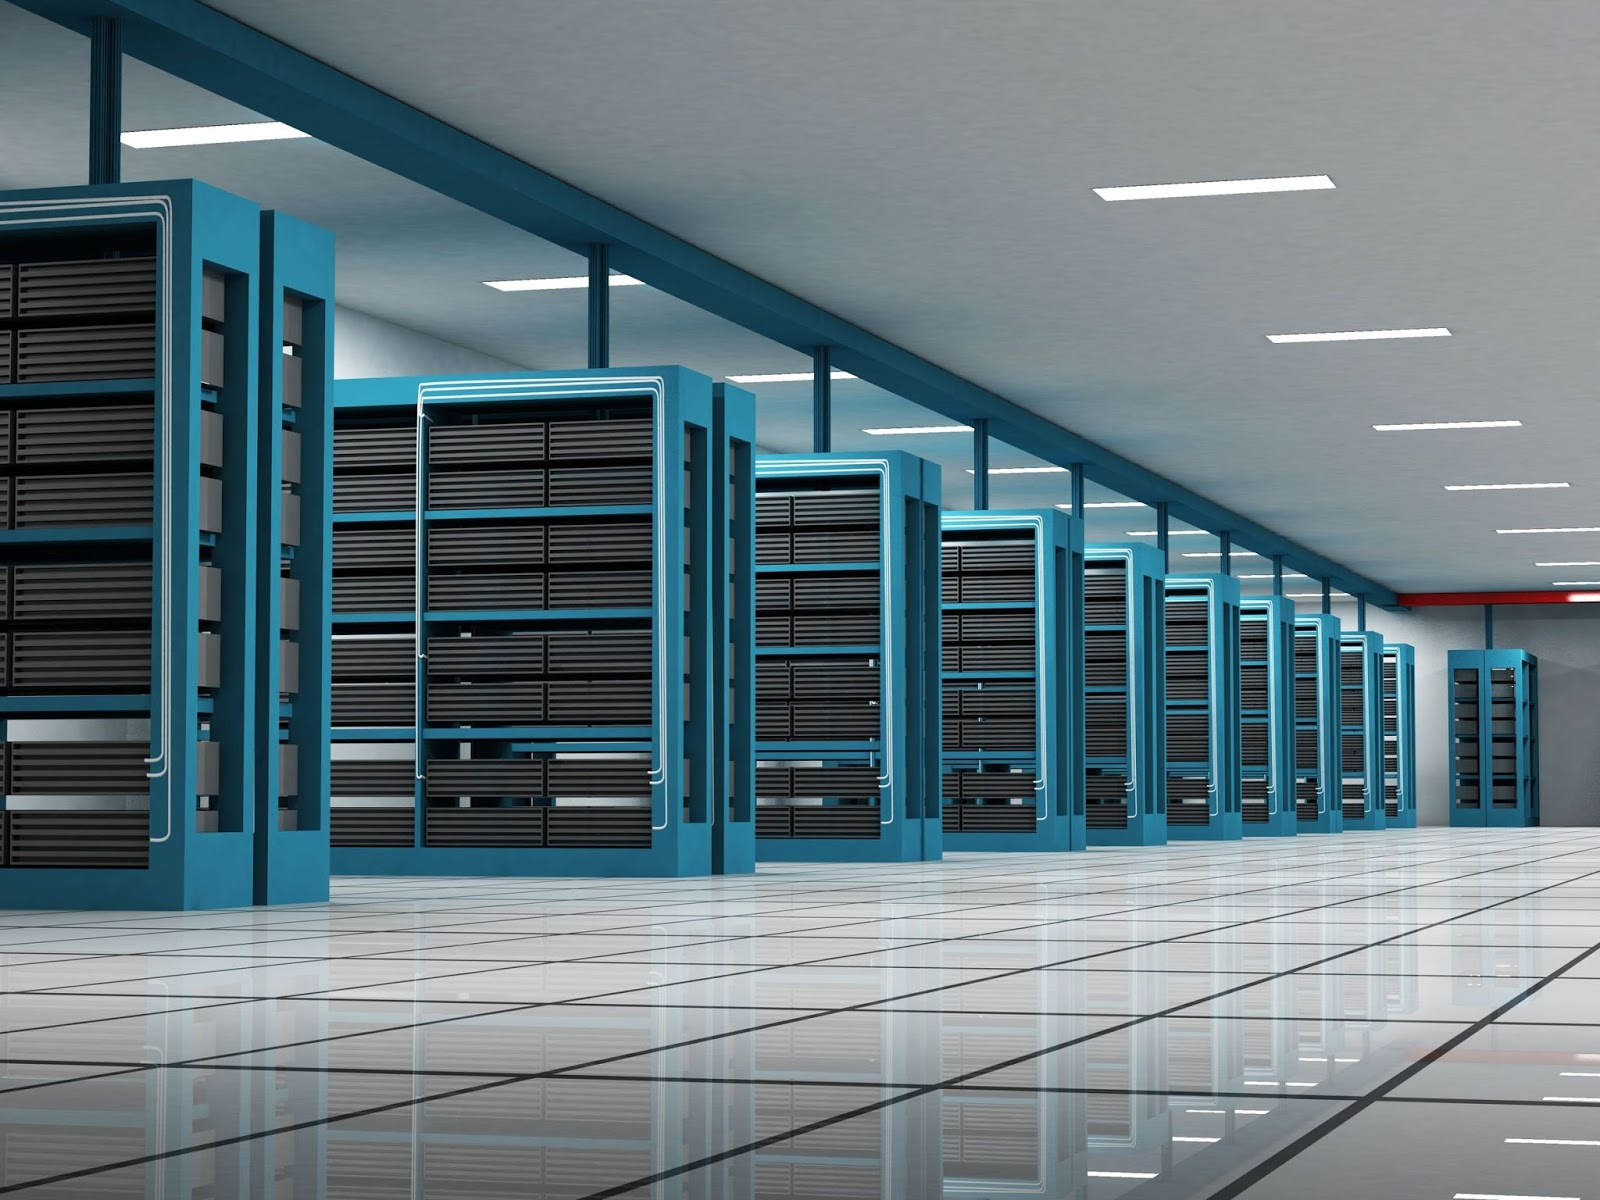 Organizations have several choices when it comes to dedicated servers in Europe. We deploy the most advanced hardware, proven effective datacenter operation and security best practices, and package it all together in the form of business friendly plans, delivering the best of end to end dedicated server solutions for businesses across the globe.